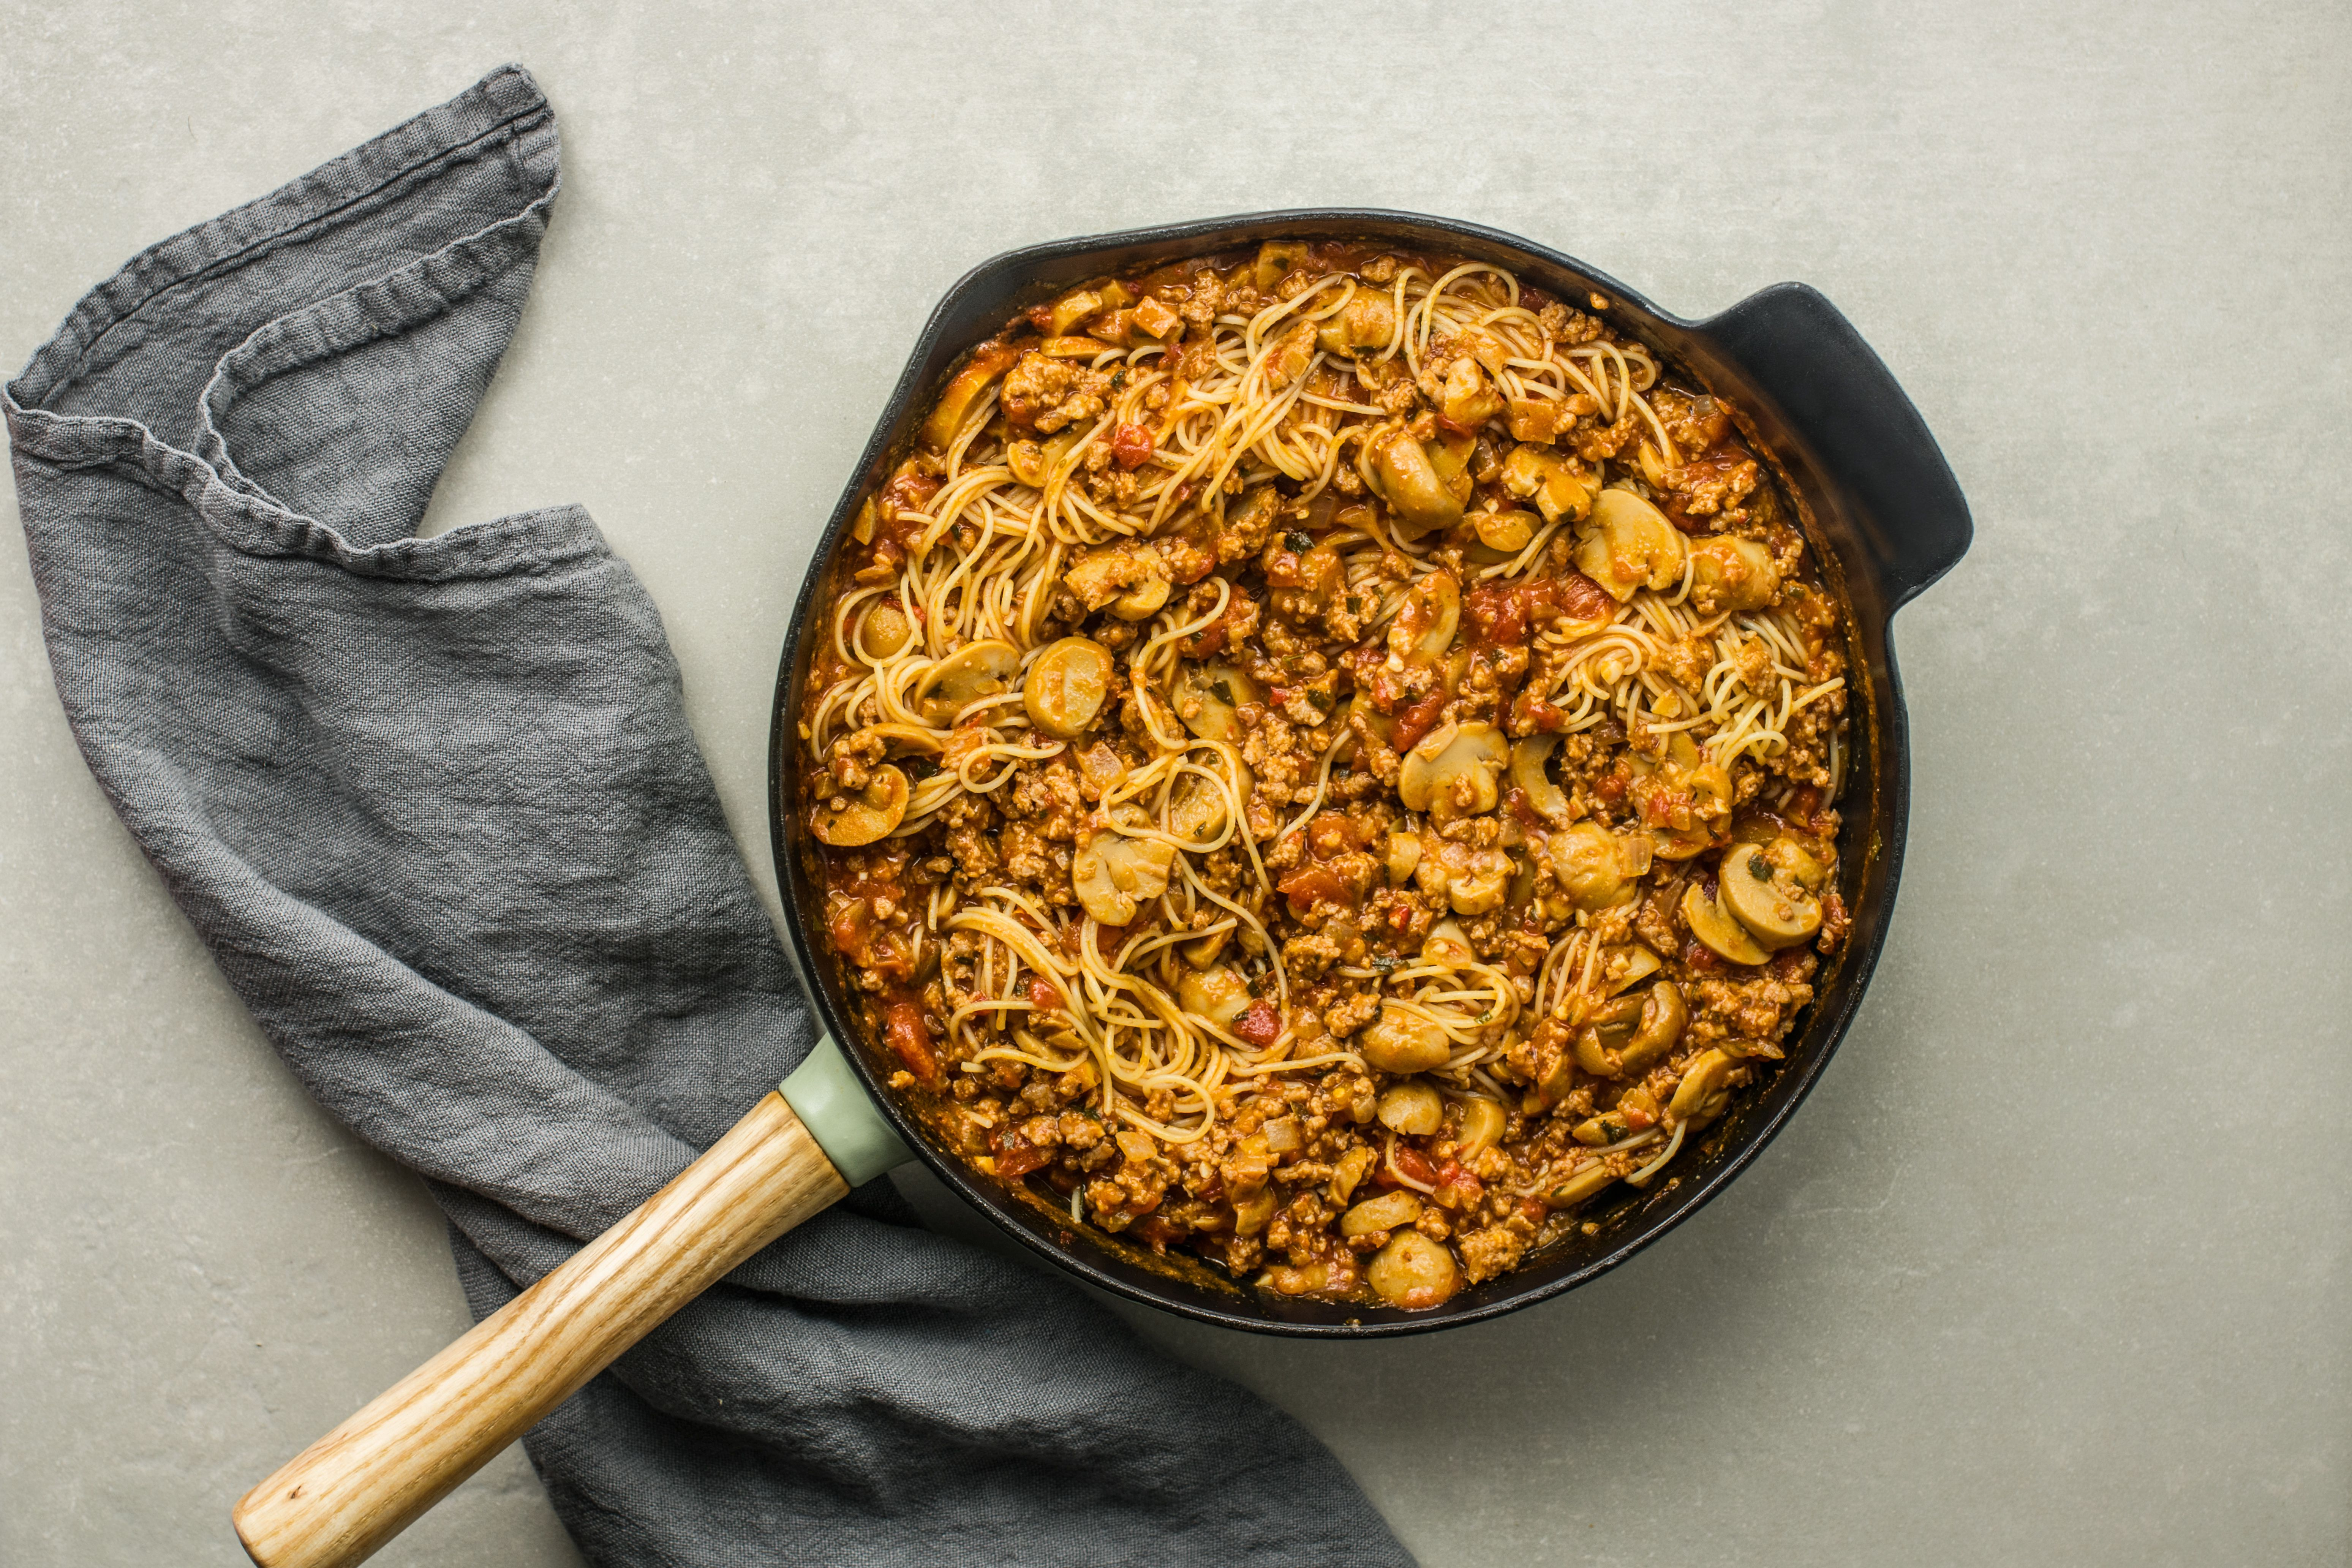 Cooked poasta added to skillet